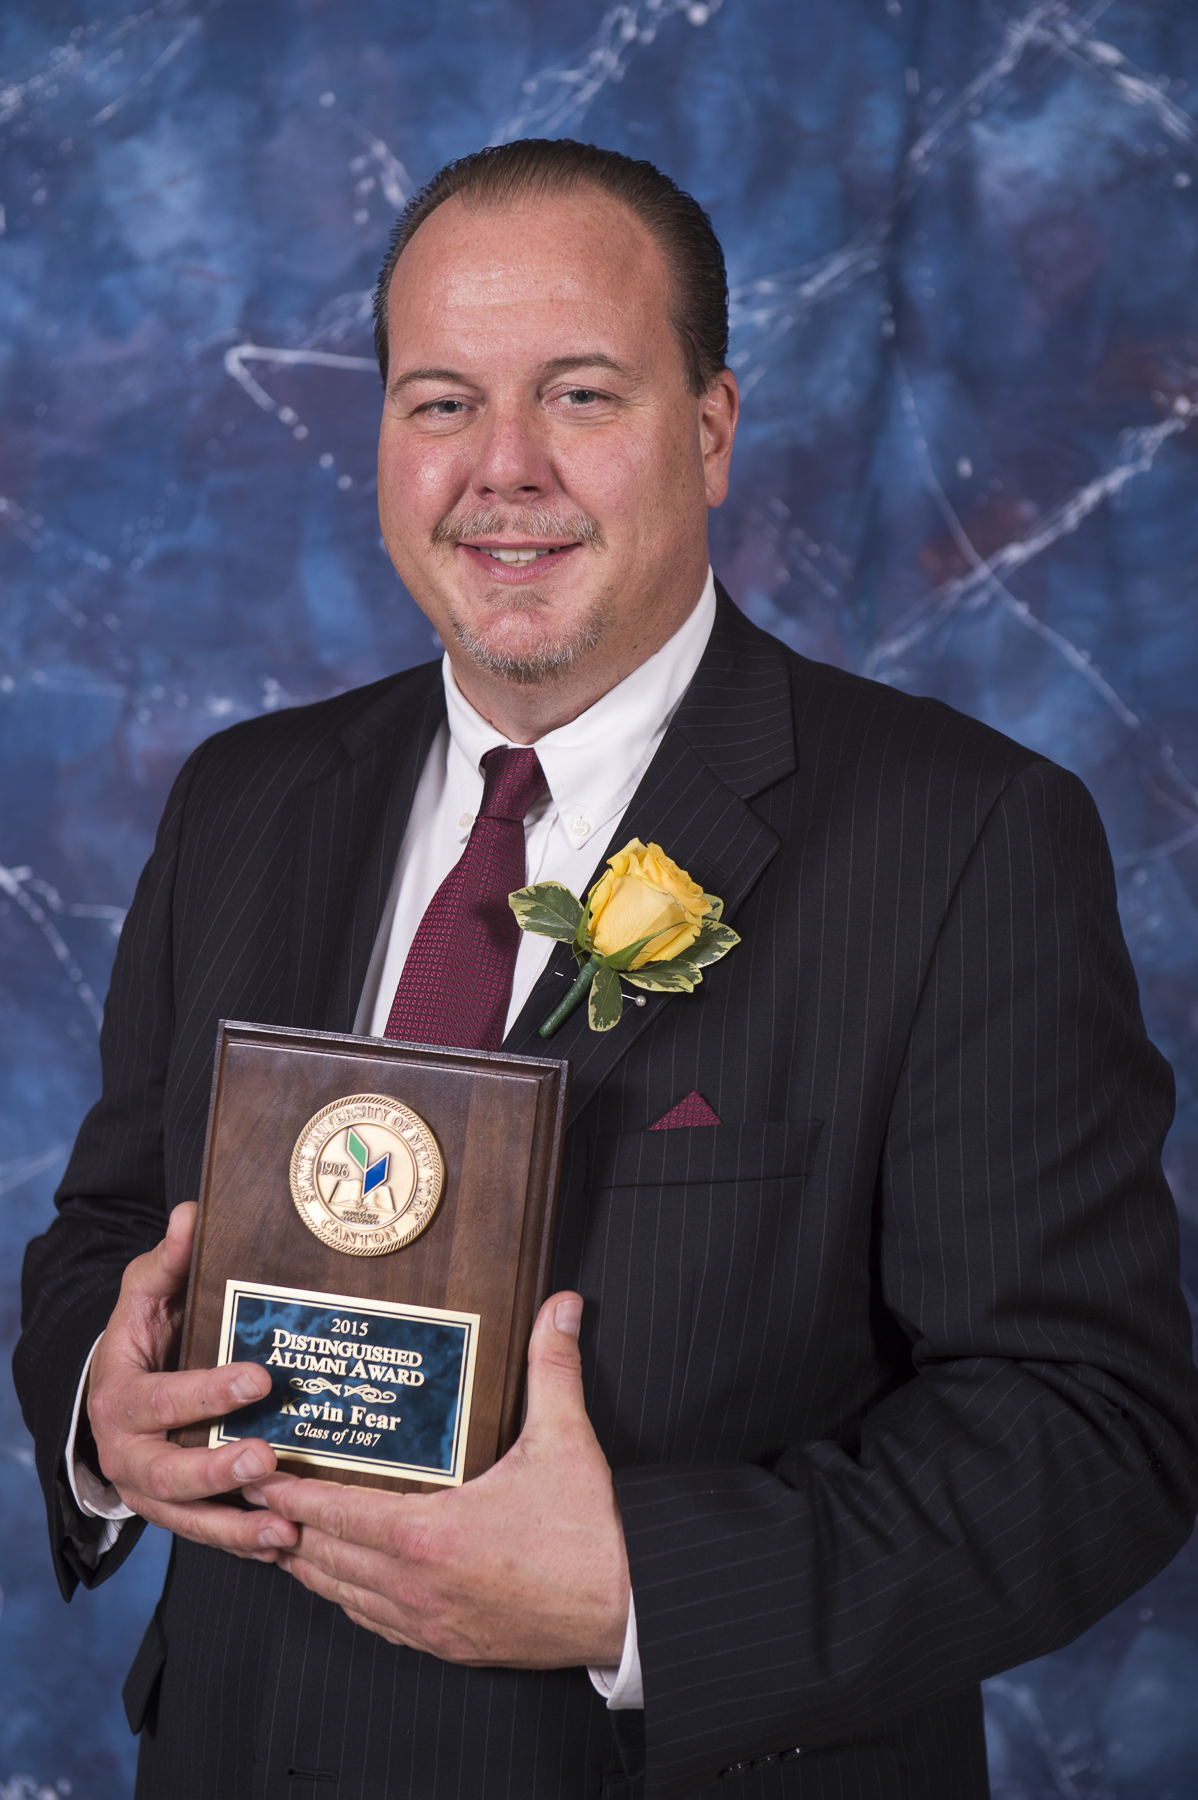 kevin fear received suny alumnus award - Mattress Express